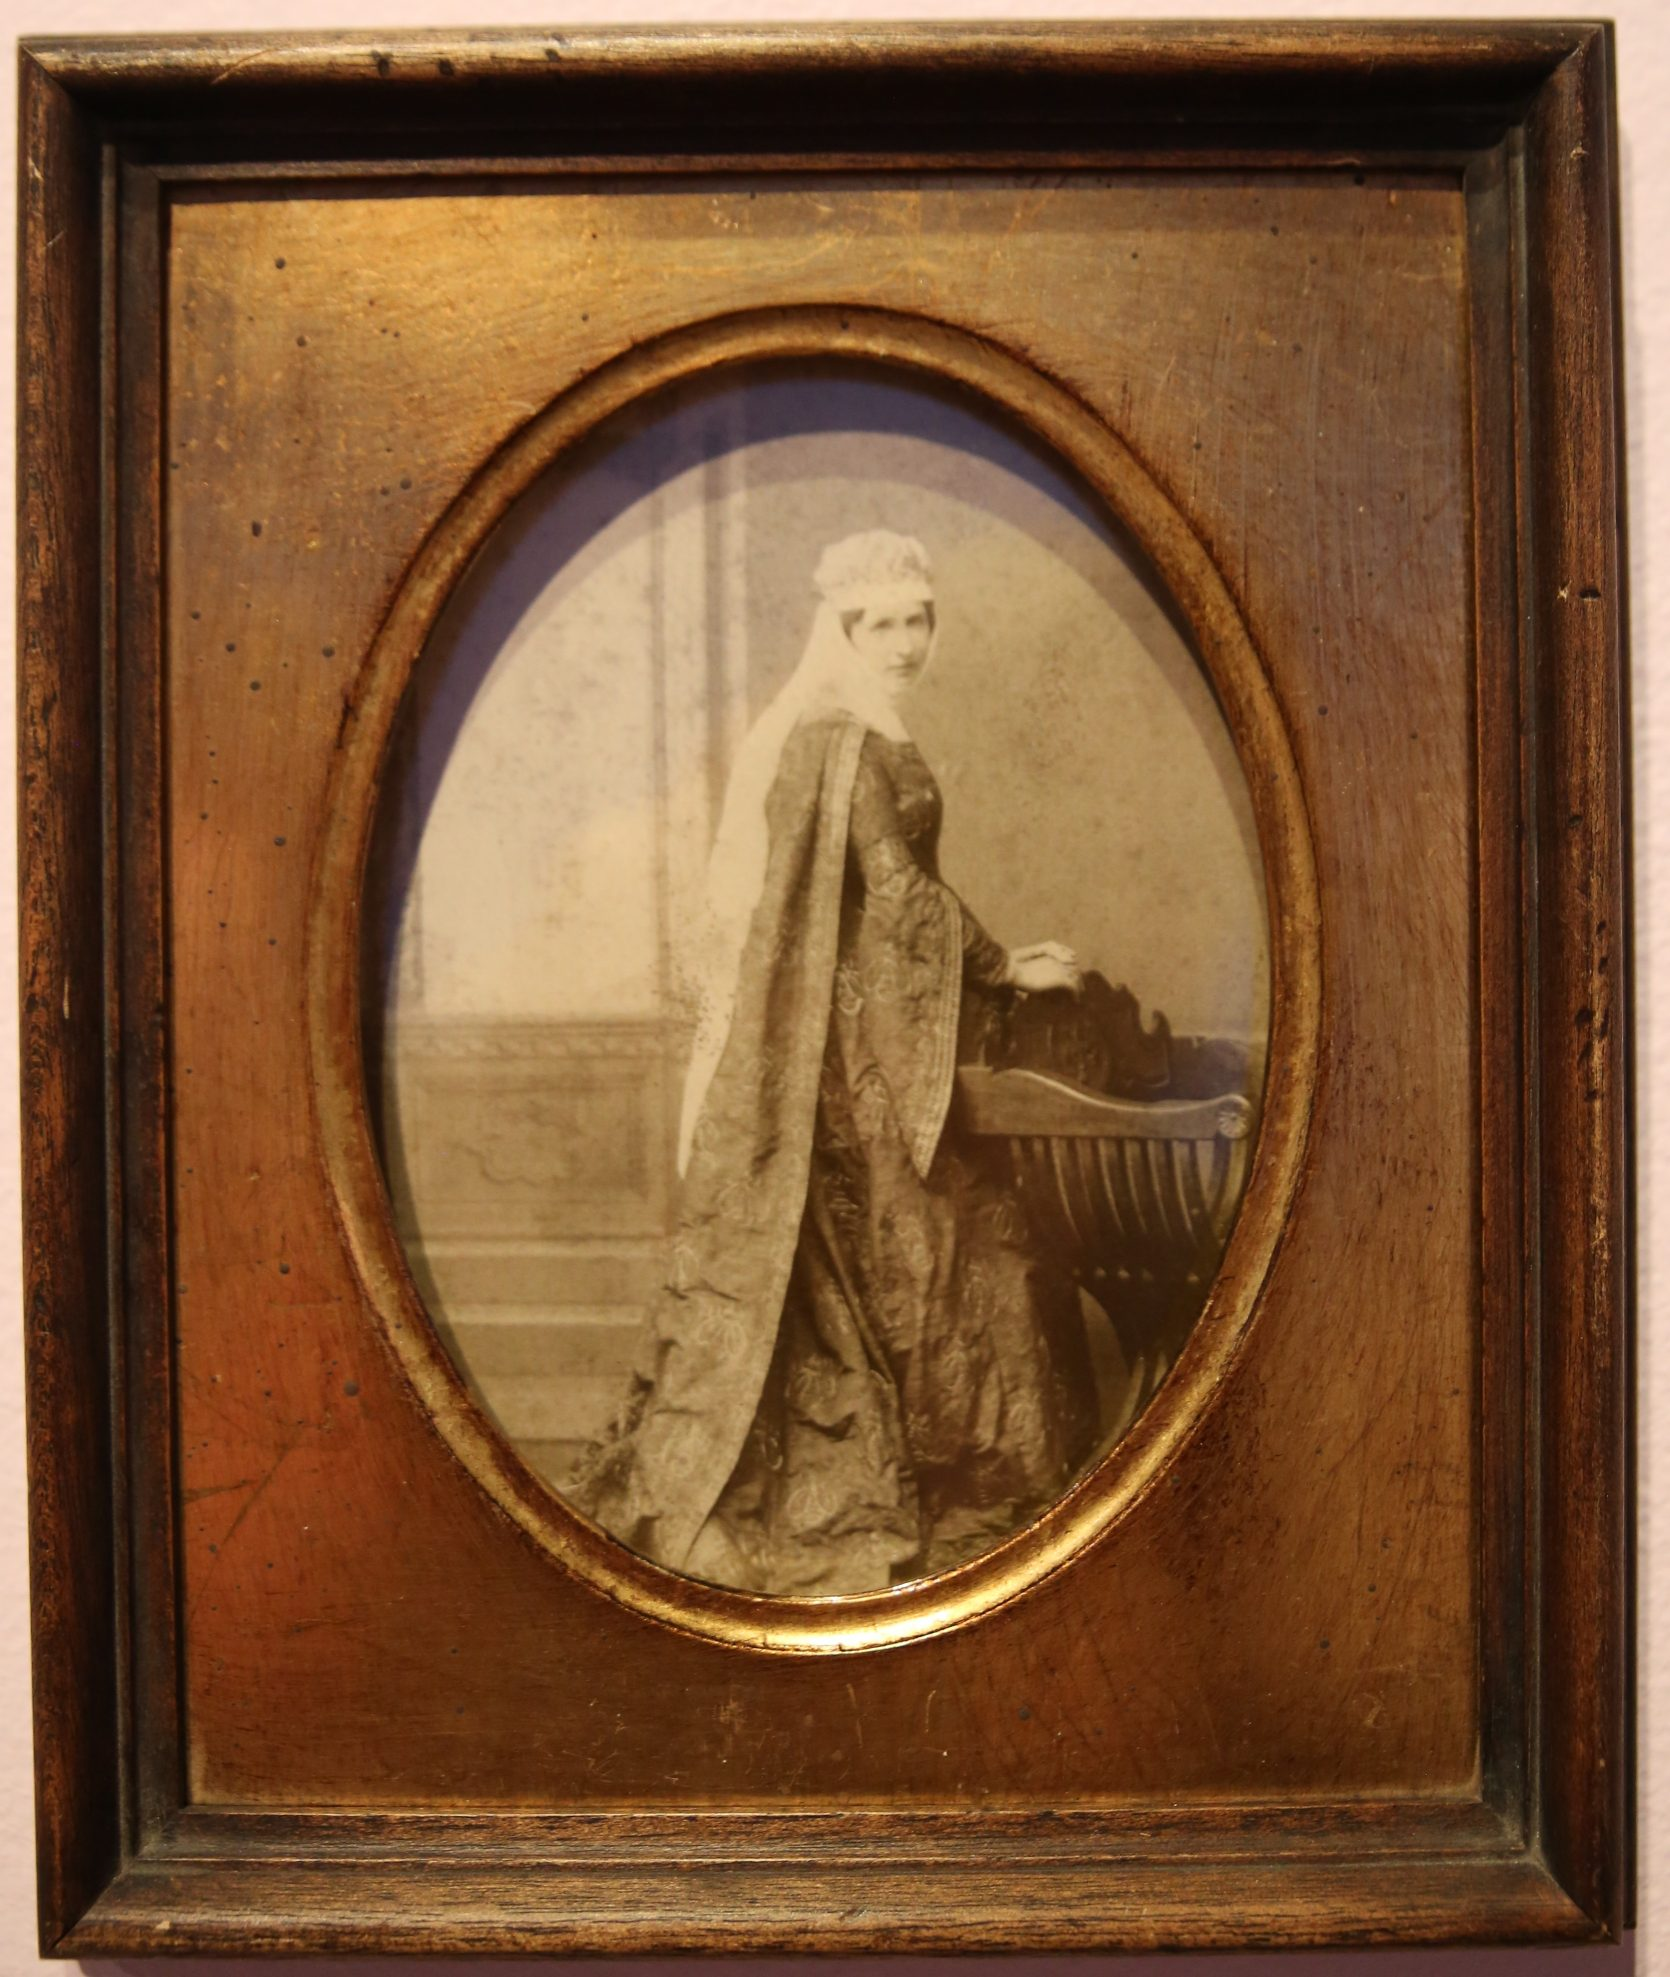 aa8c37707c6 ... Portrait of Anna Barberini Corsini wearing her costume for the  celebration of the unveiling of the facade of the Duomo